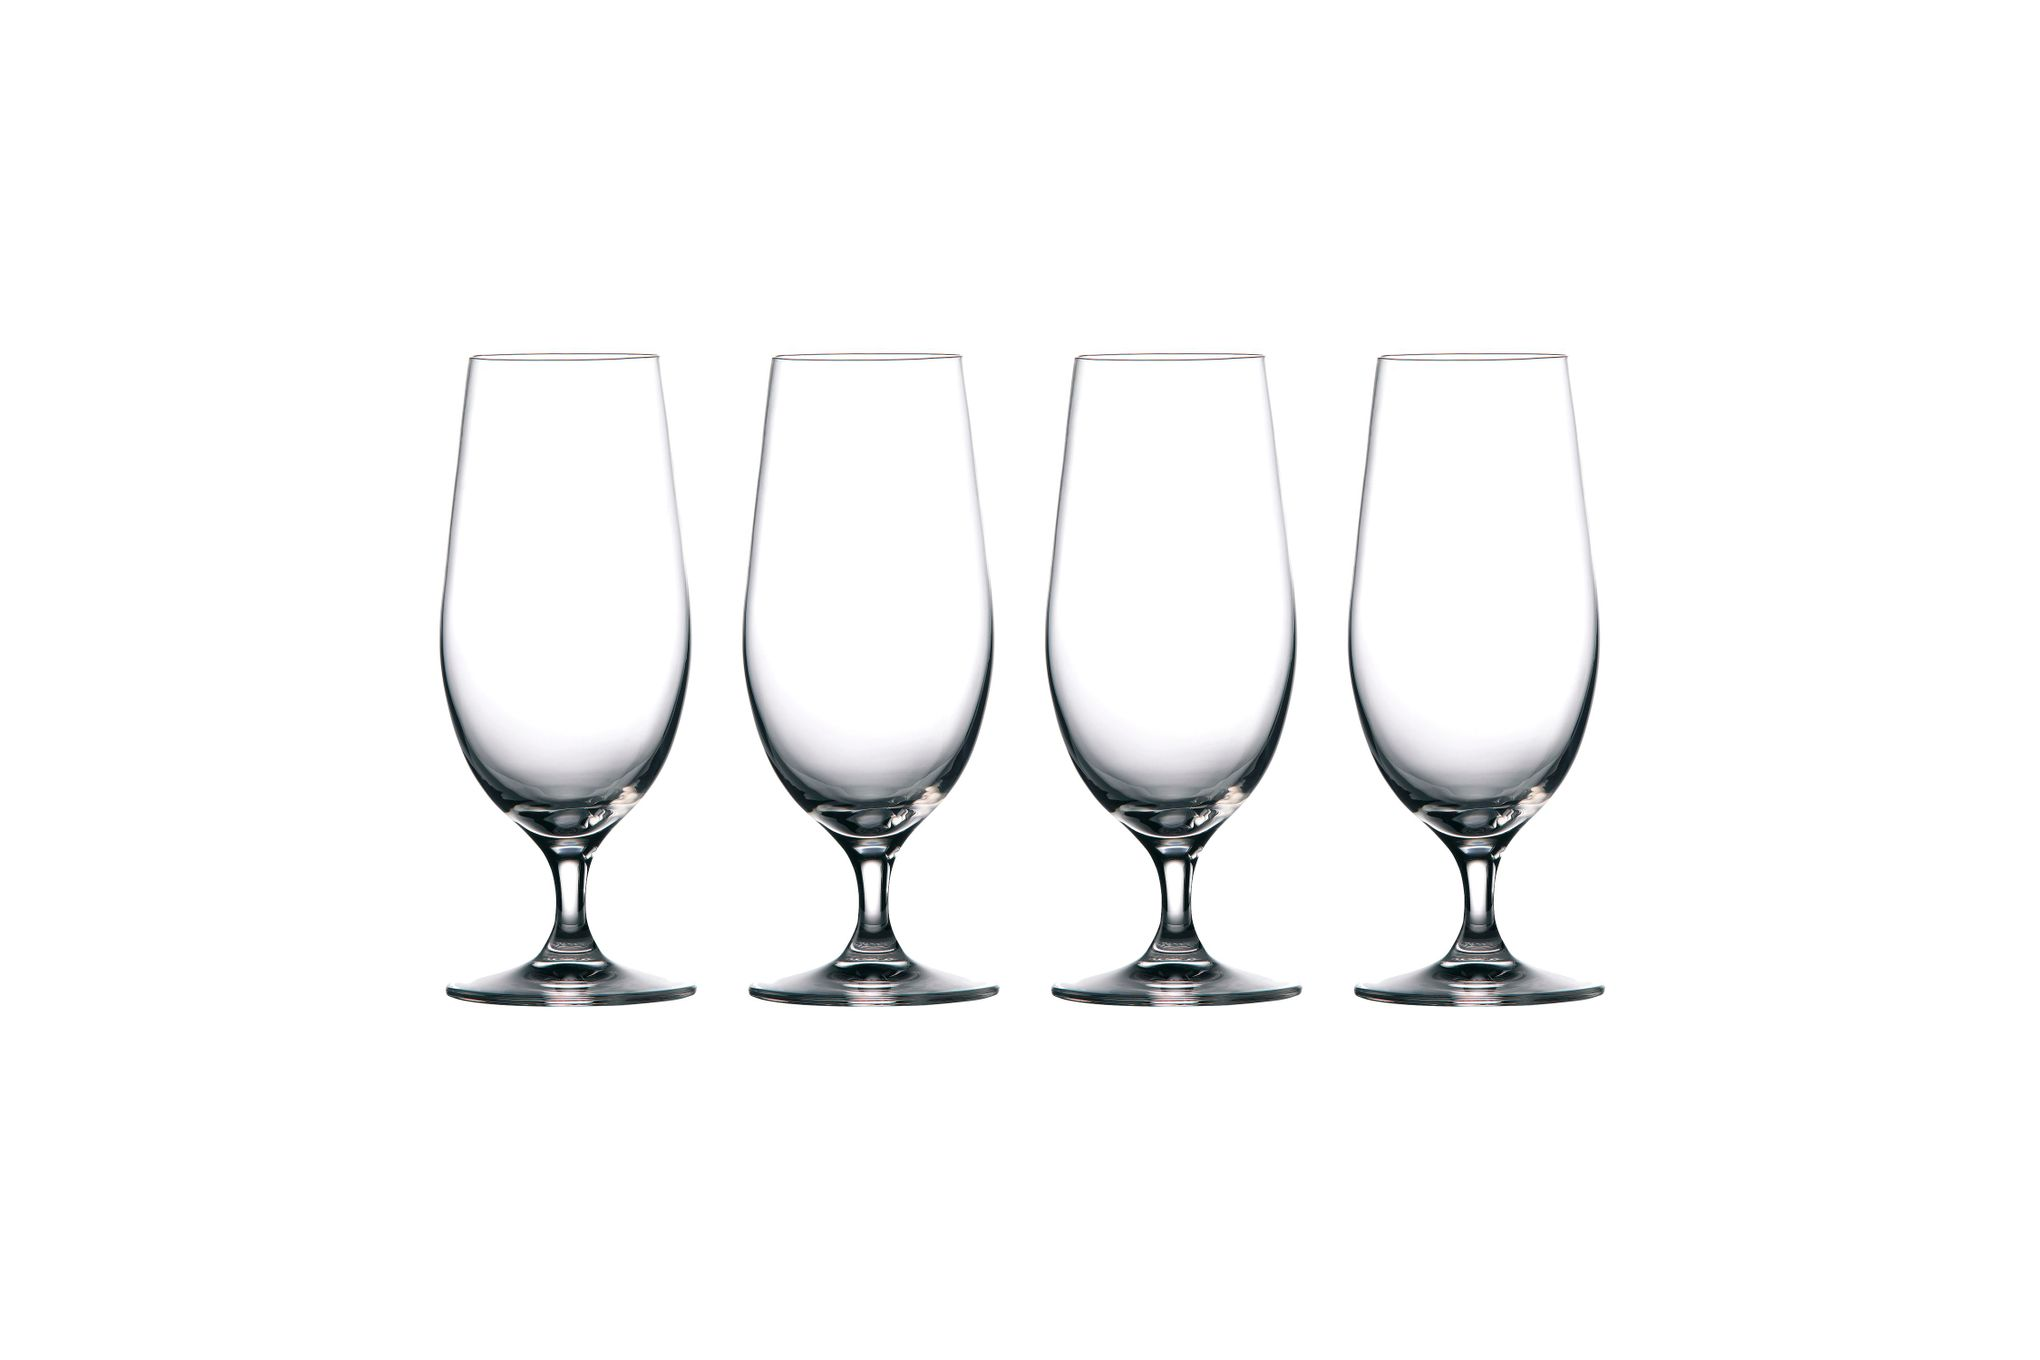 Waterford Marquis Moments Beer Glass - Set of 4 460ml thumb 2